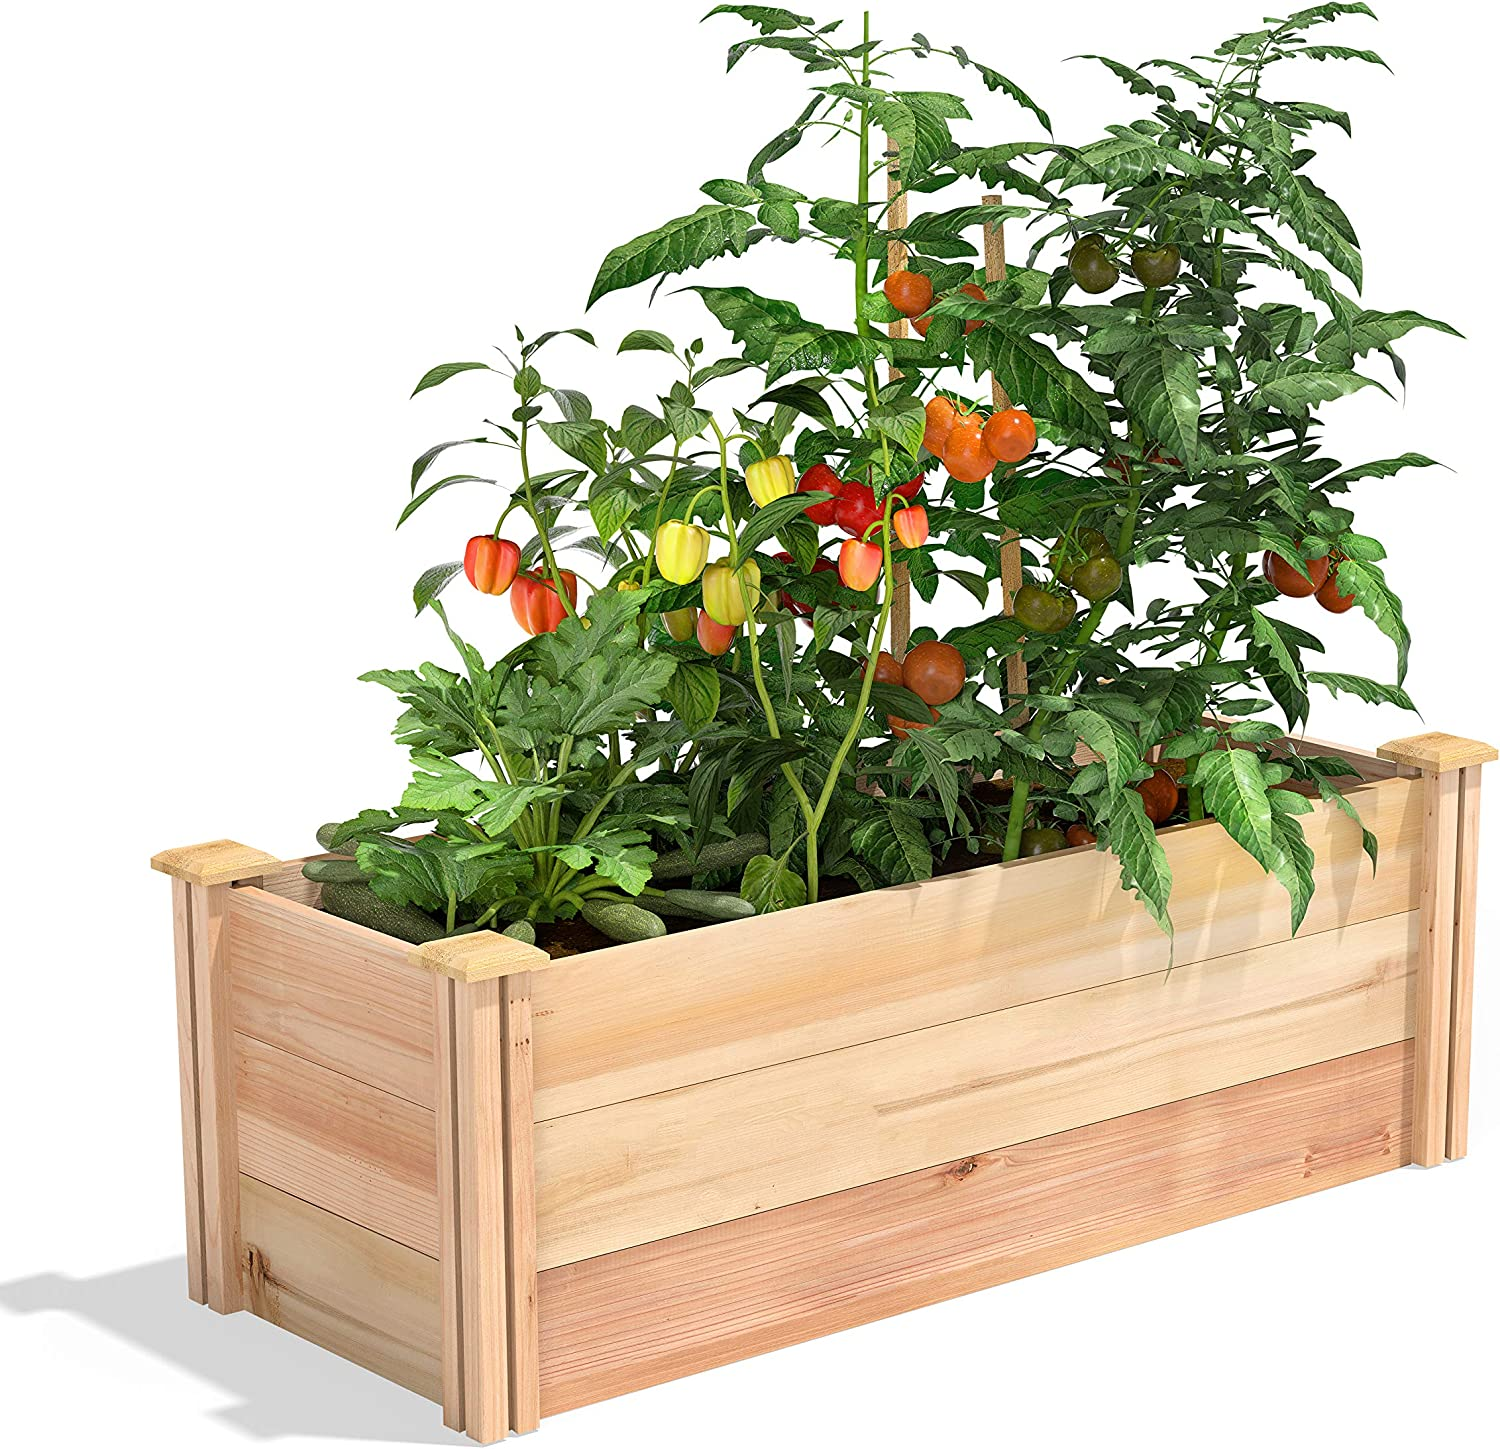 "Greenes Fence Premium Cedar Raised Garden Bed, 16"" x 48"" x 16.5"""